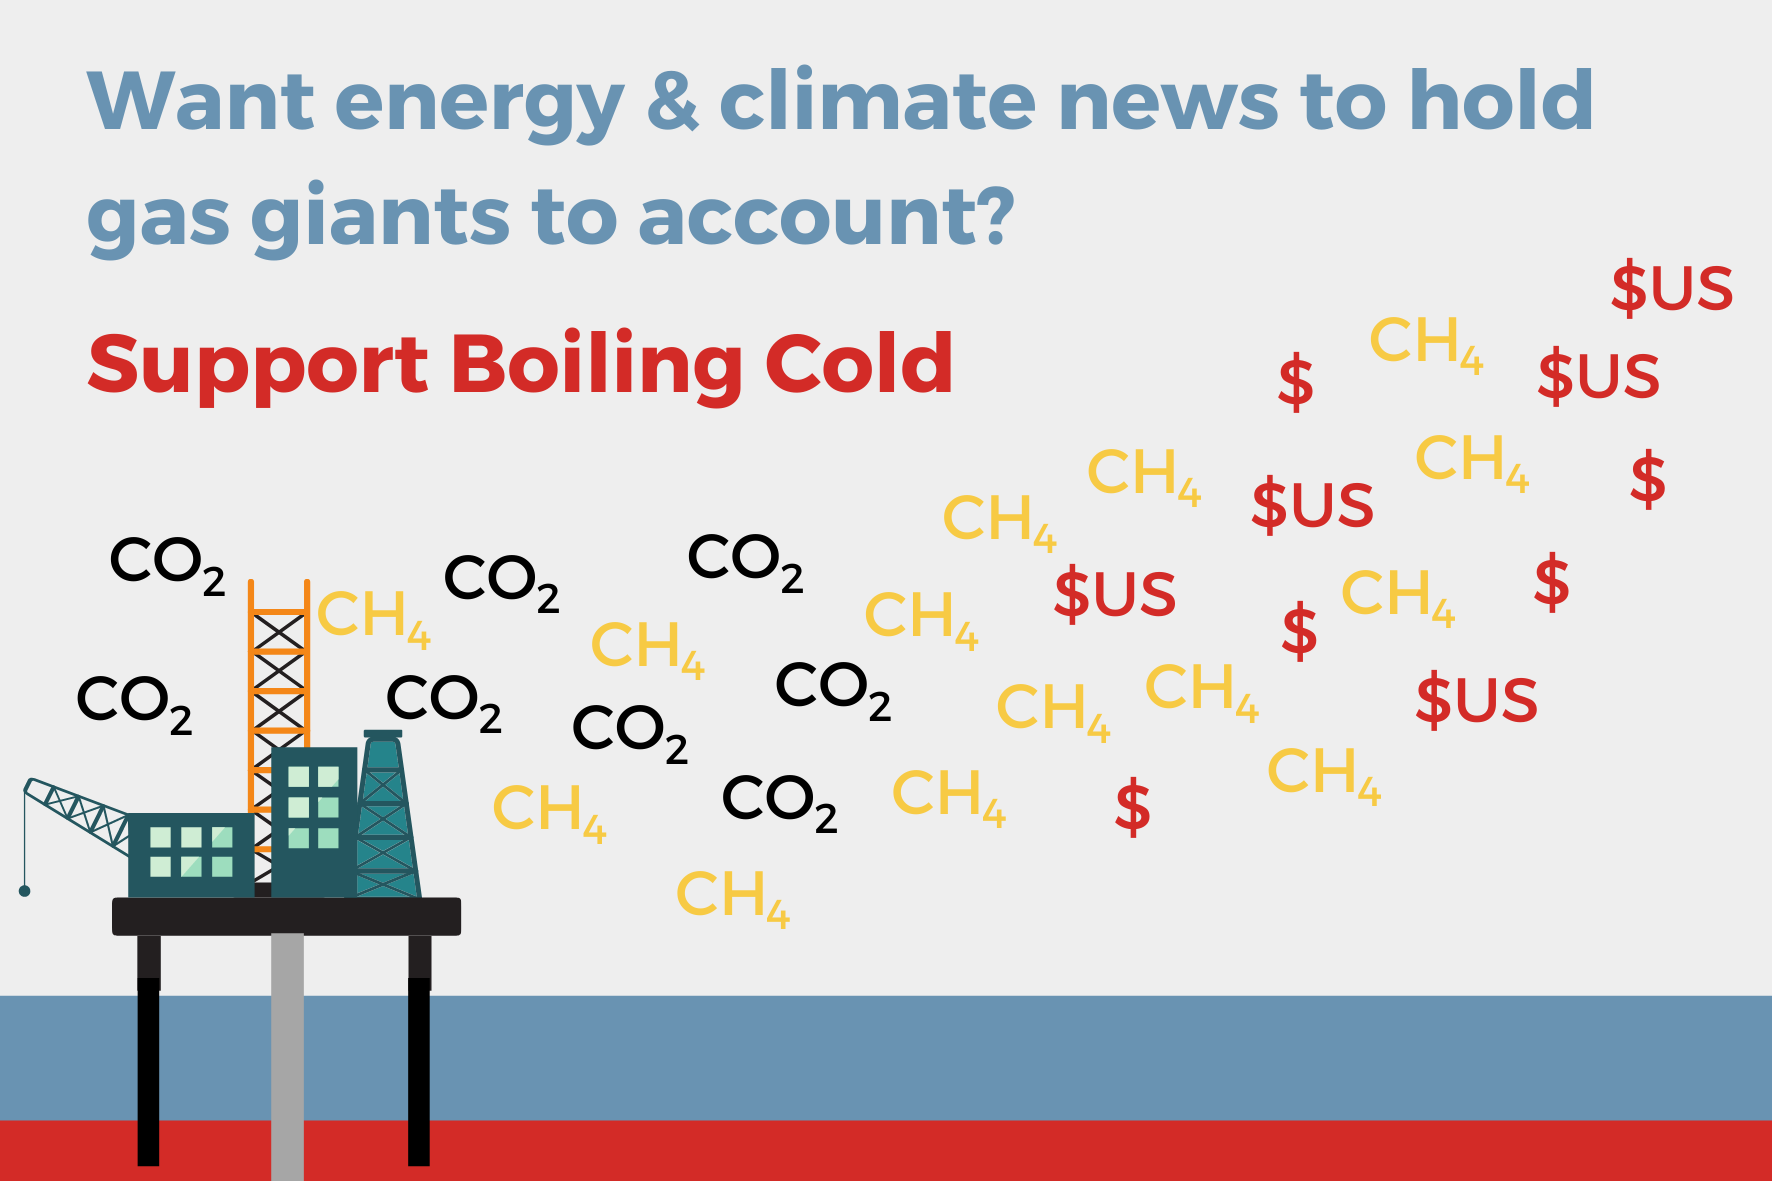 Want energy and climate news to hold gas giants to account? Support Boiling Cold.